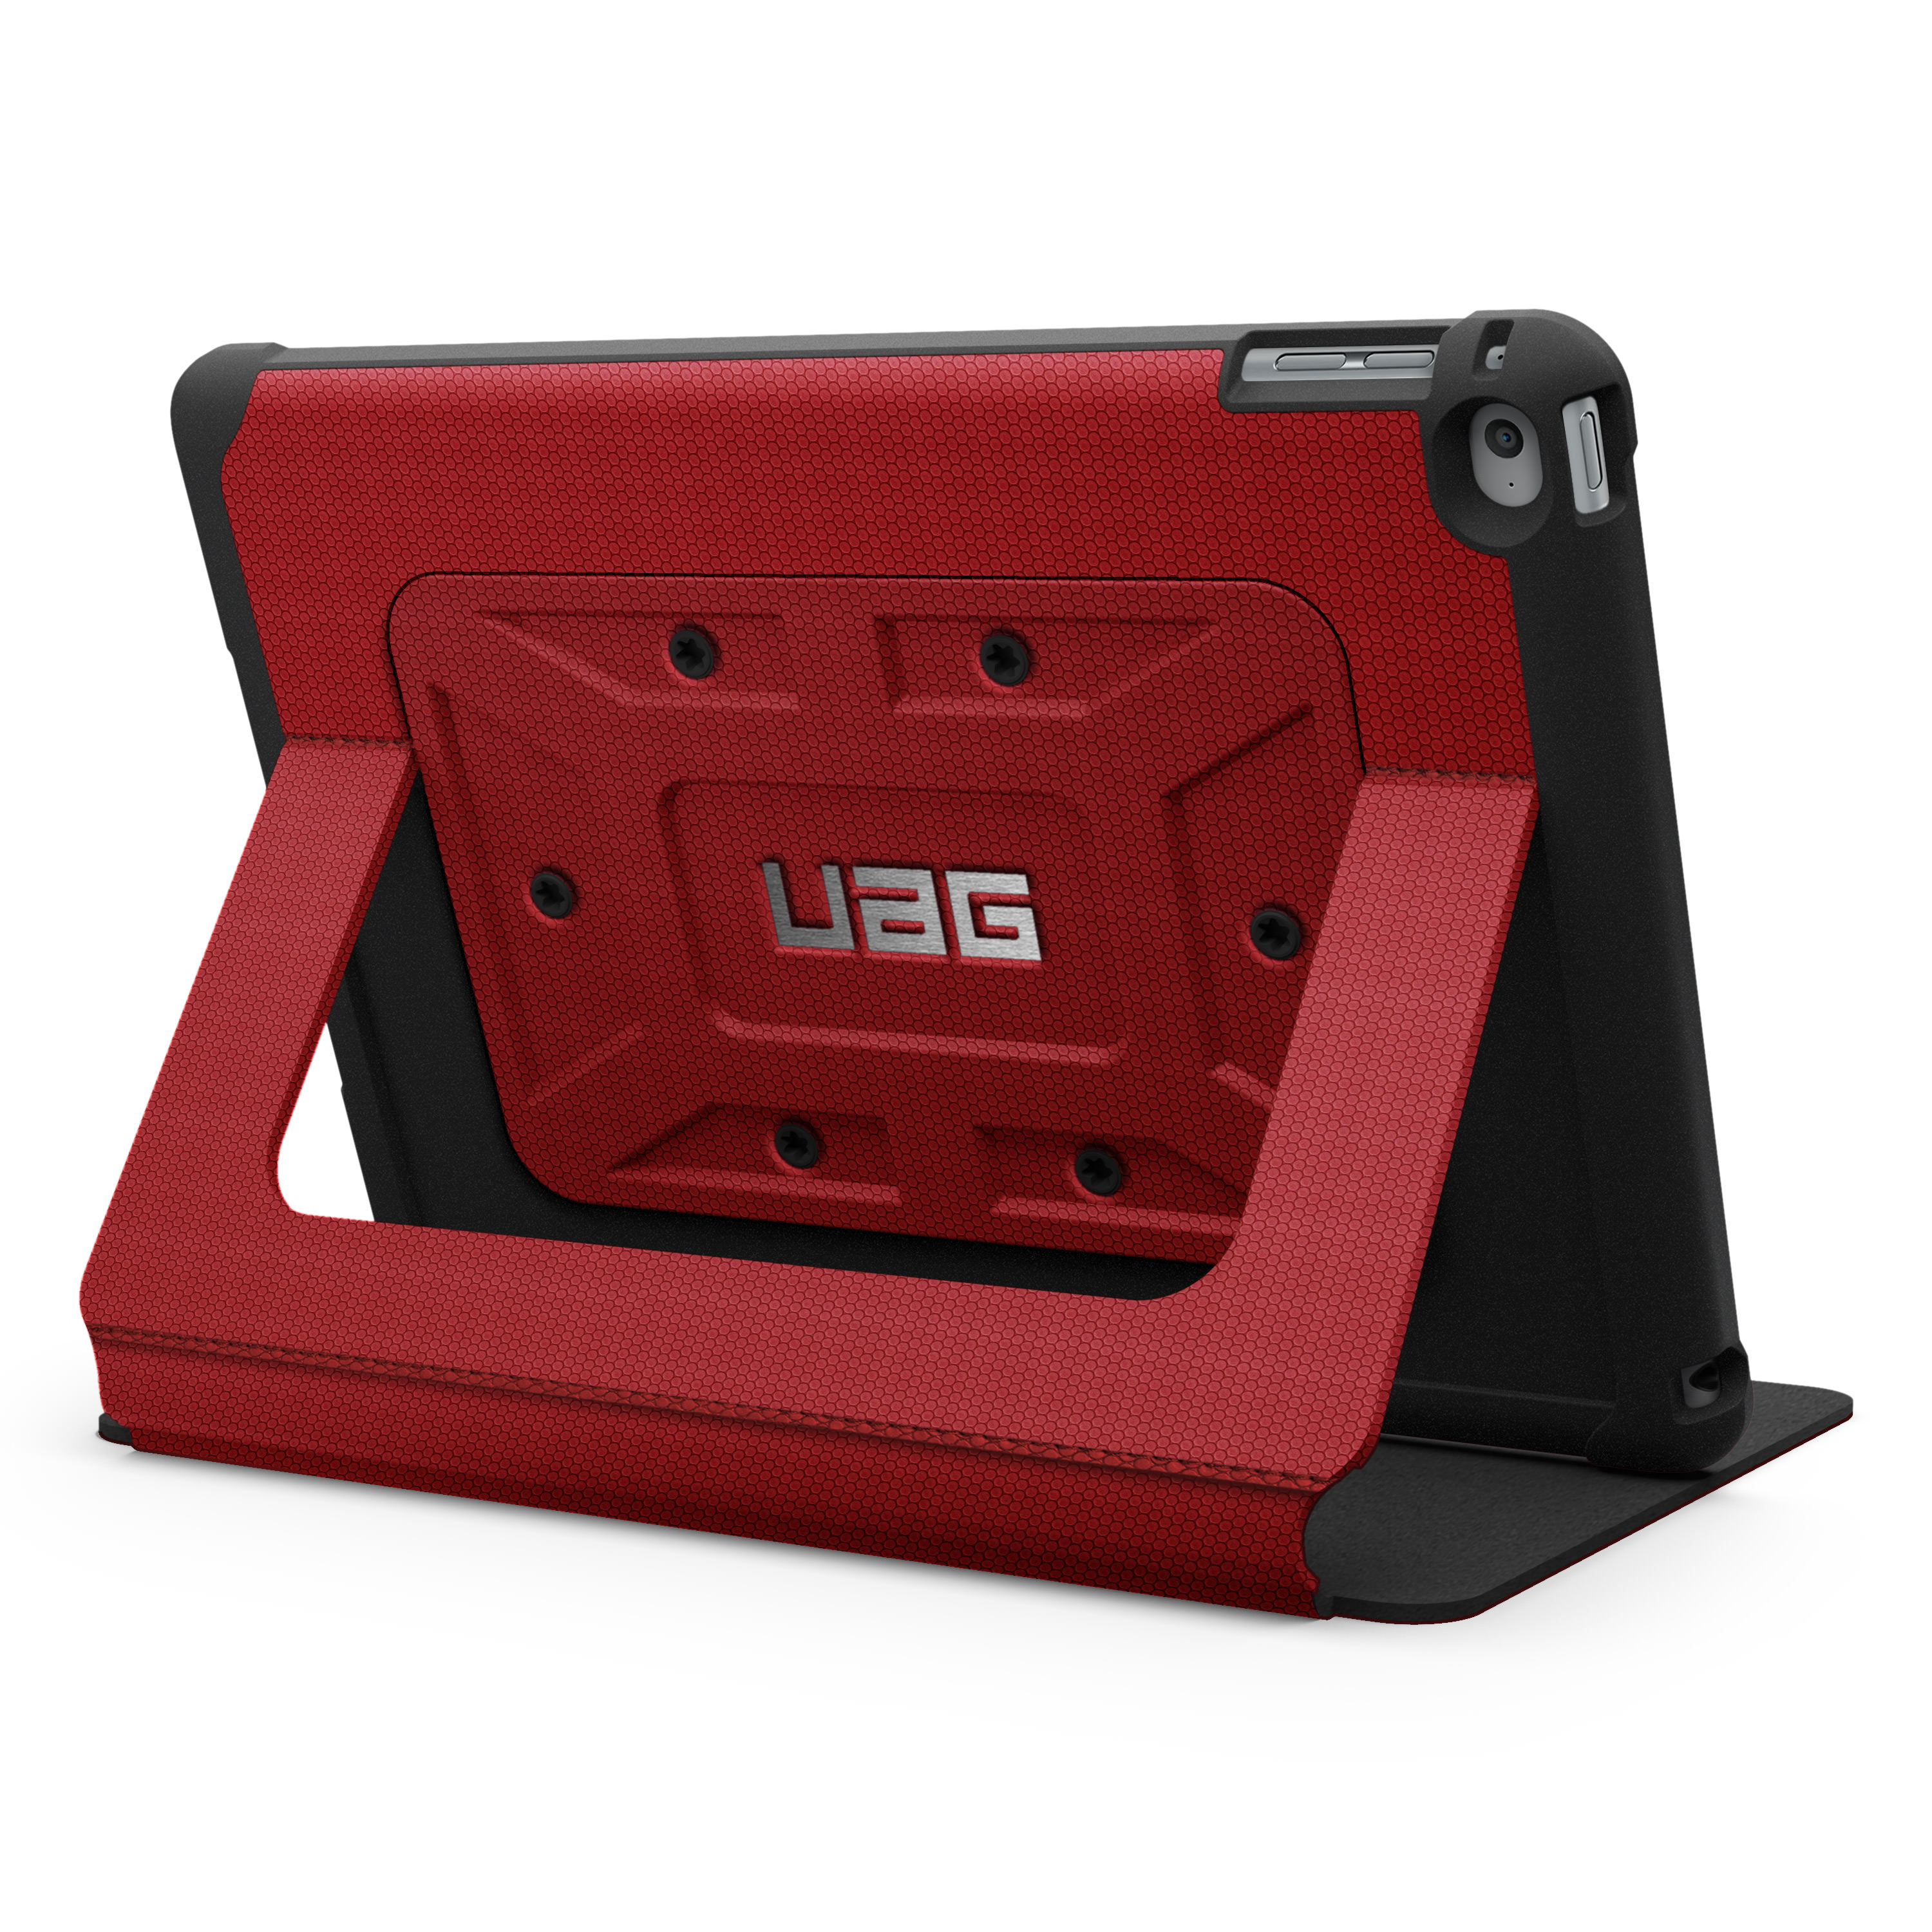 Uag Ipad Air 2 Folio Case Rouge Red Mobile Madho